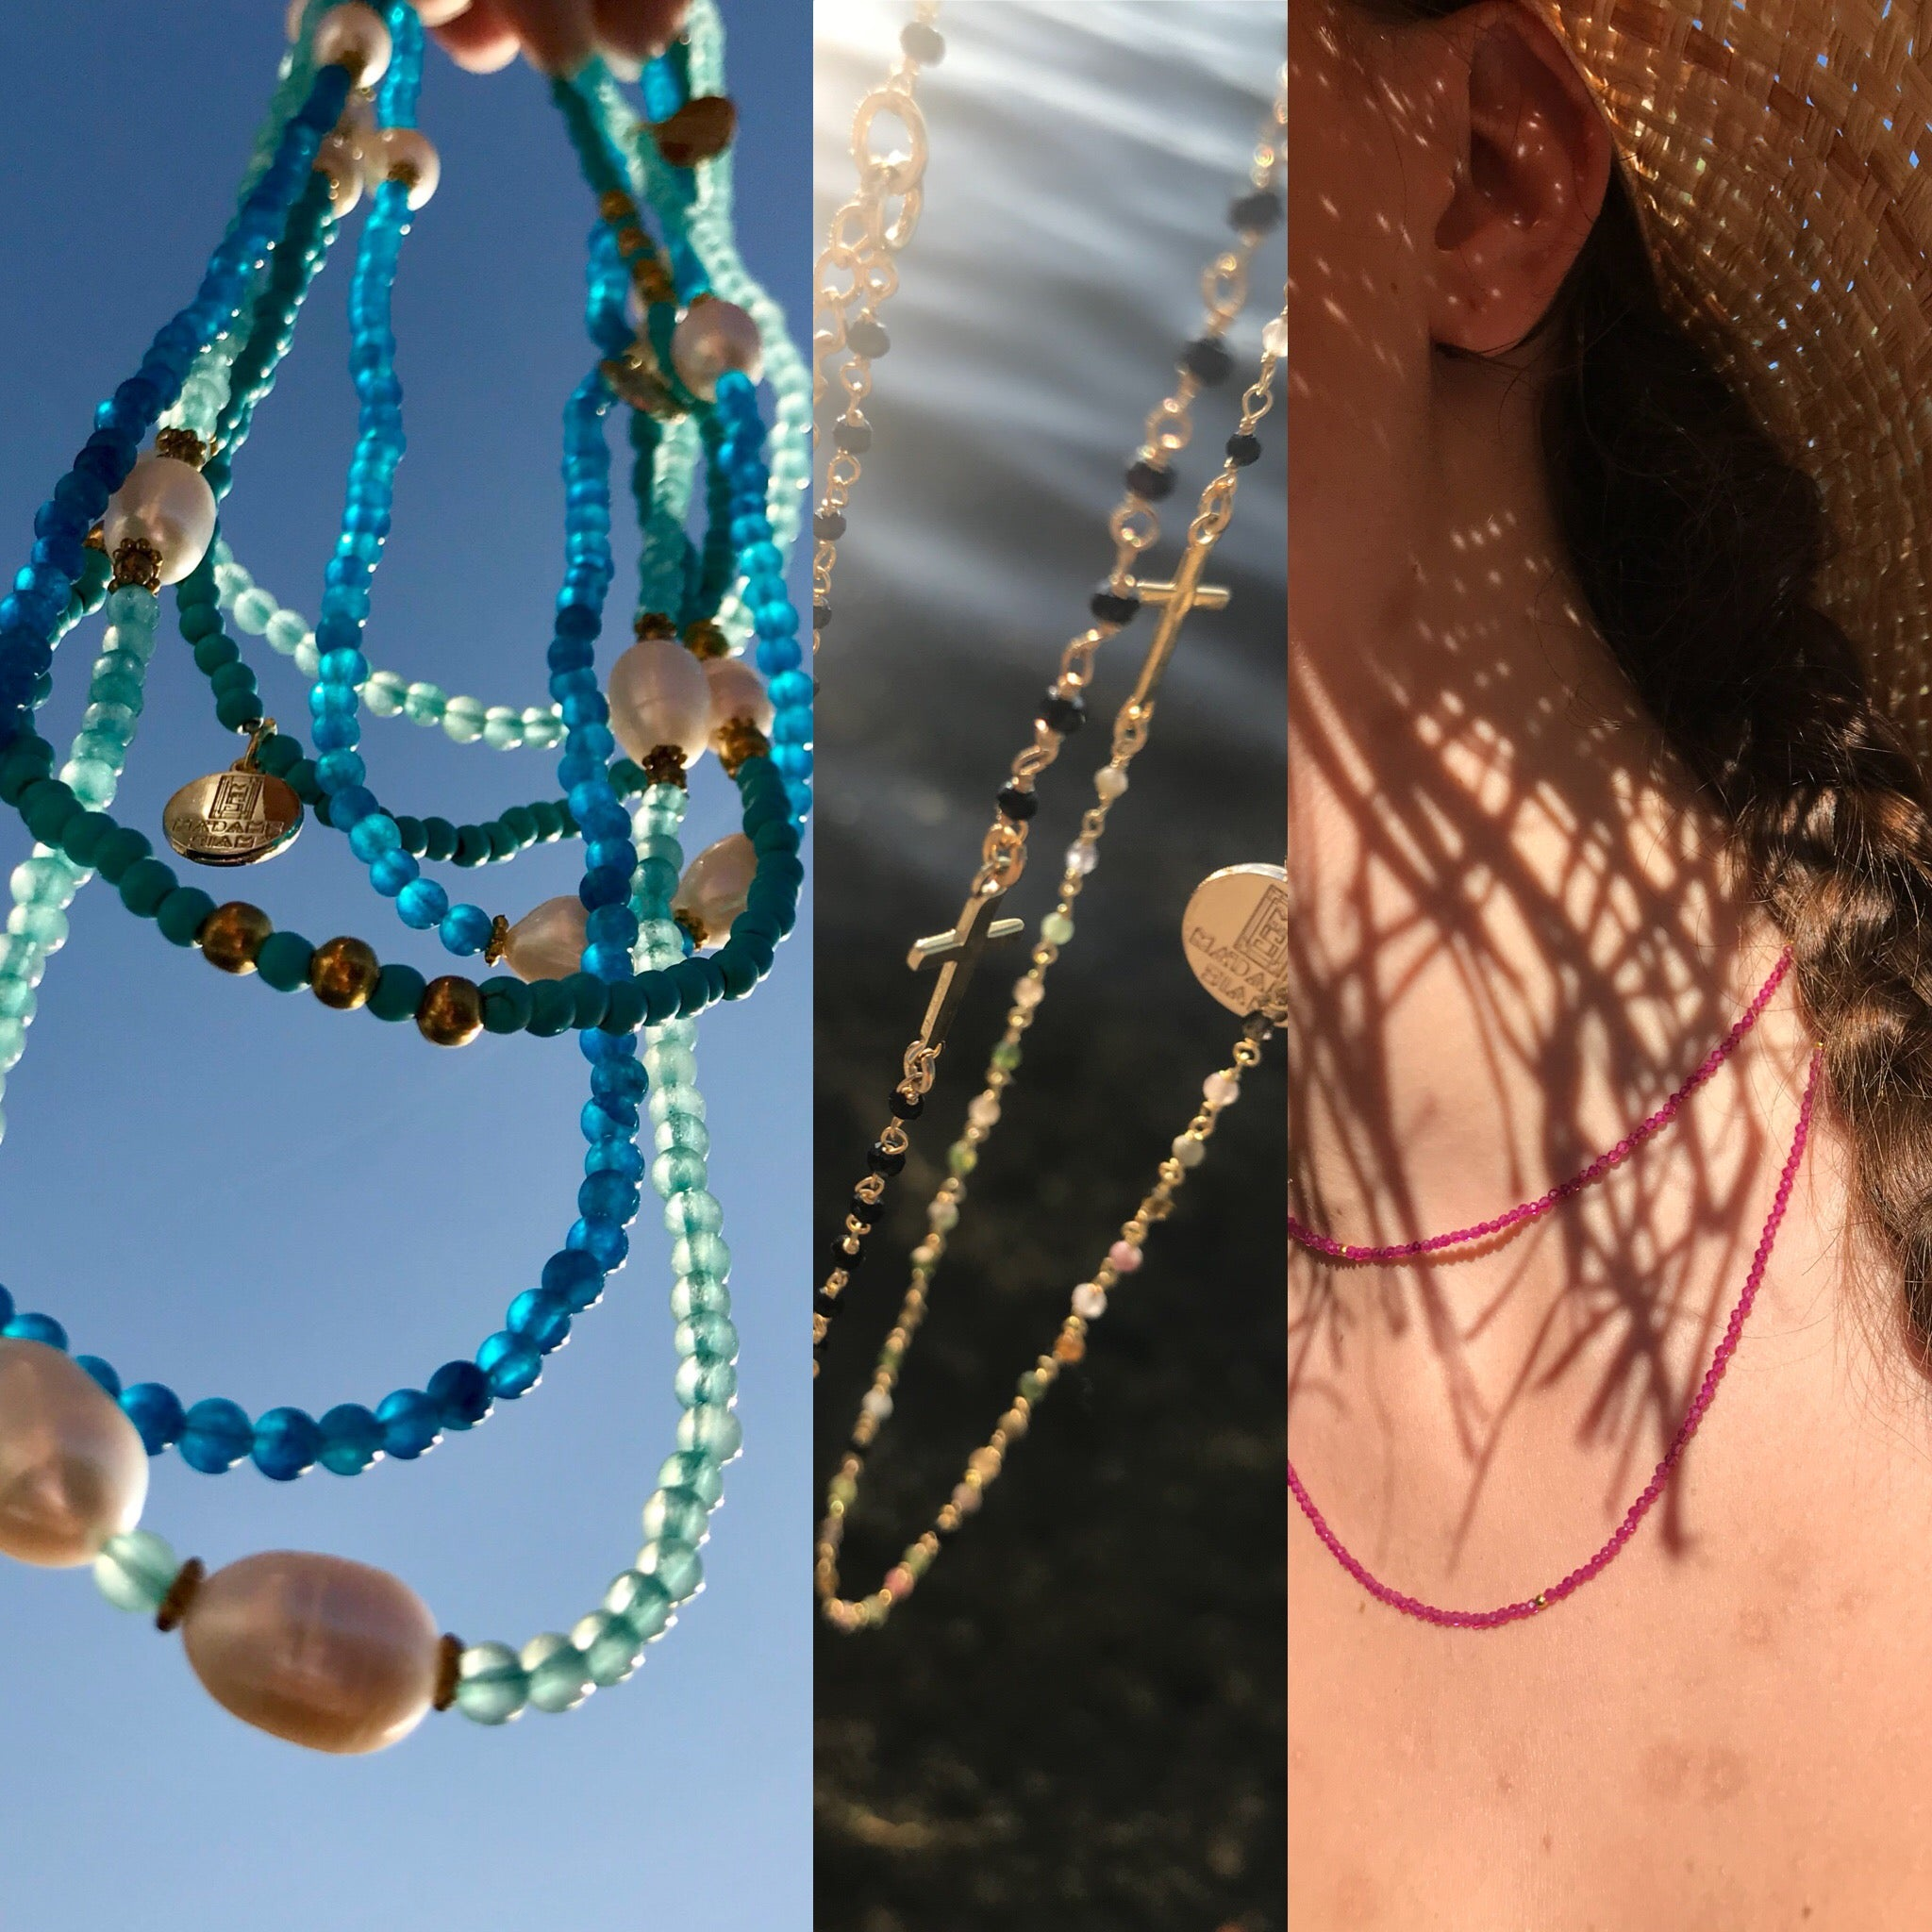 Necklaces for summer